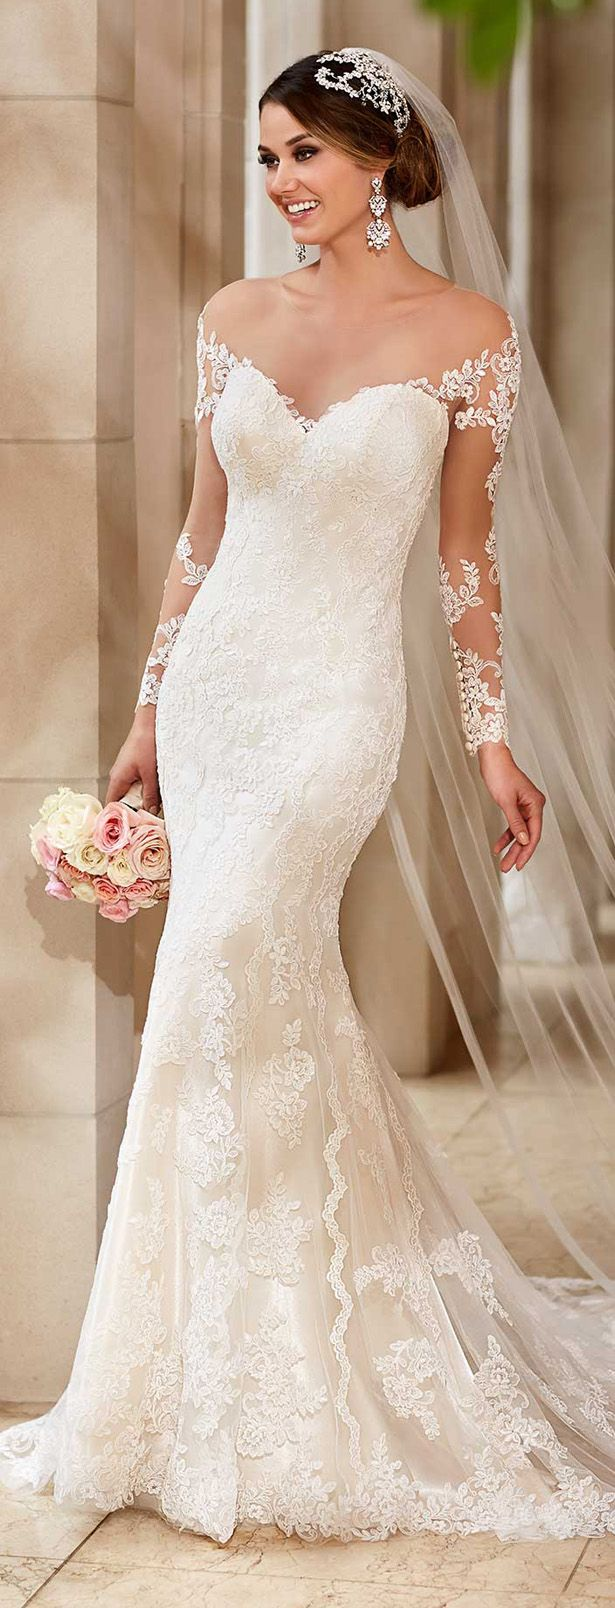 Wedding Dress by Stella York Spring 2016